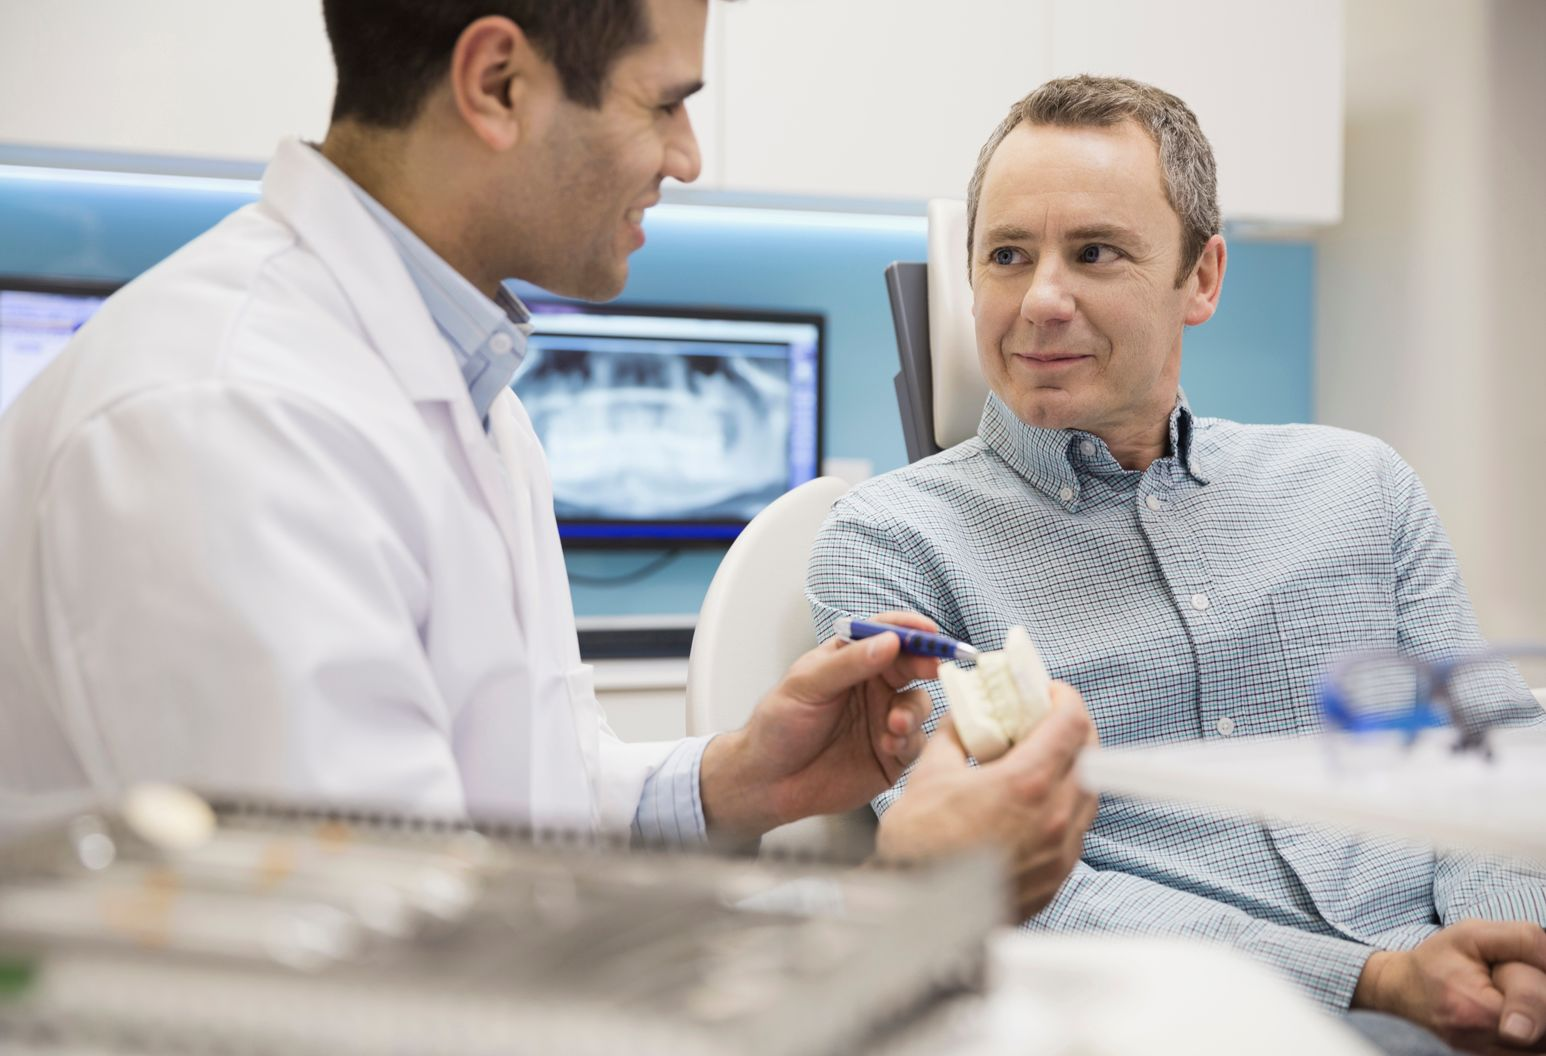 Dentist and male patient discussing teeth